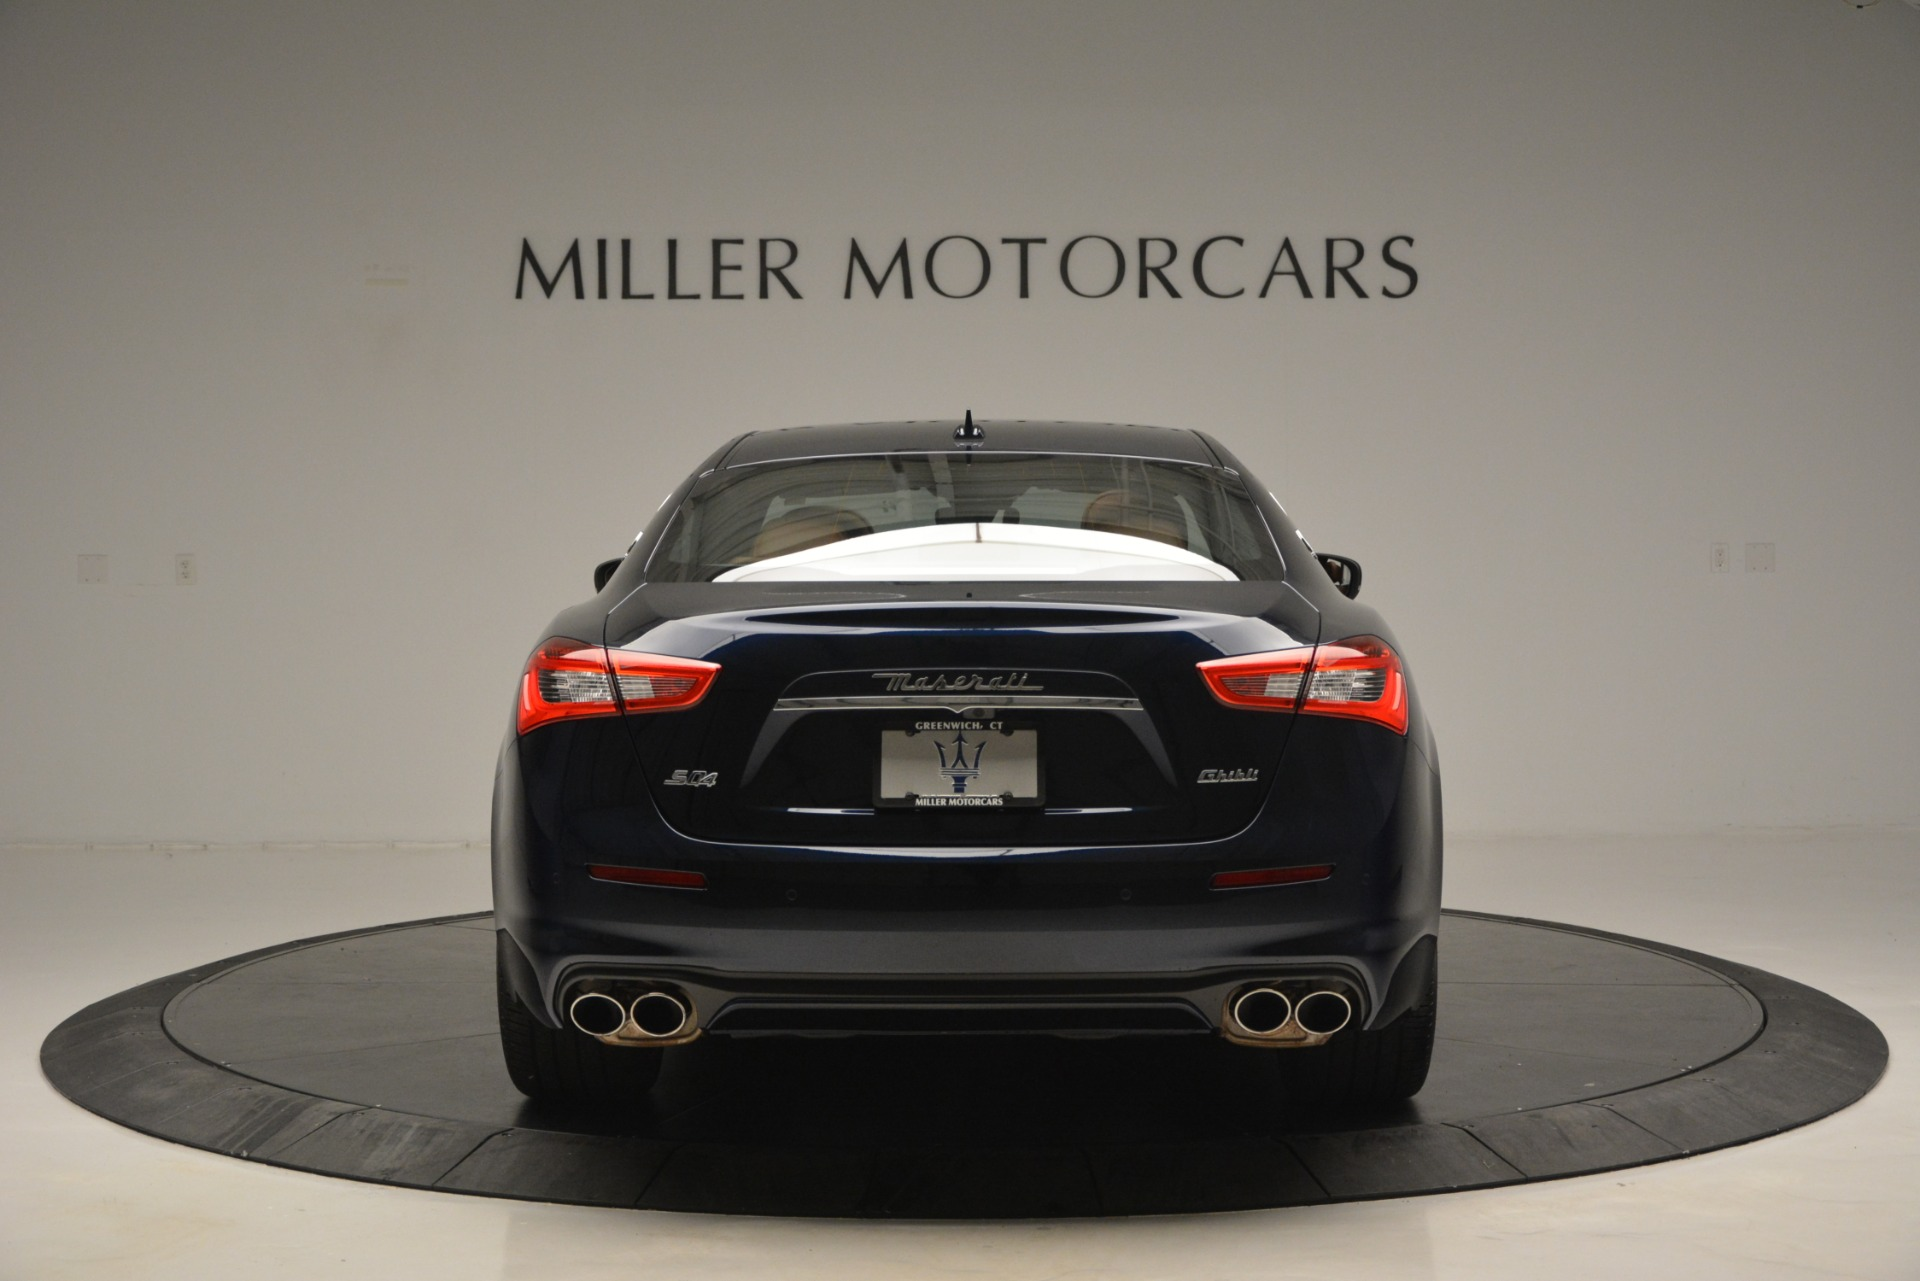 New 2019 Maserati Ghibli S Q4 GranLusso For Sale In Westport, CT 2882_p9